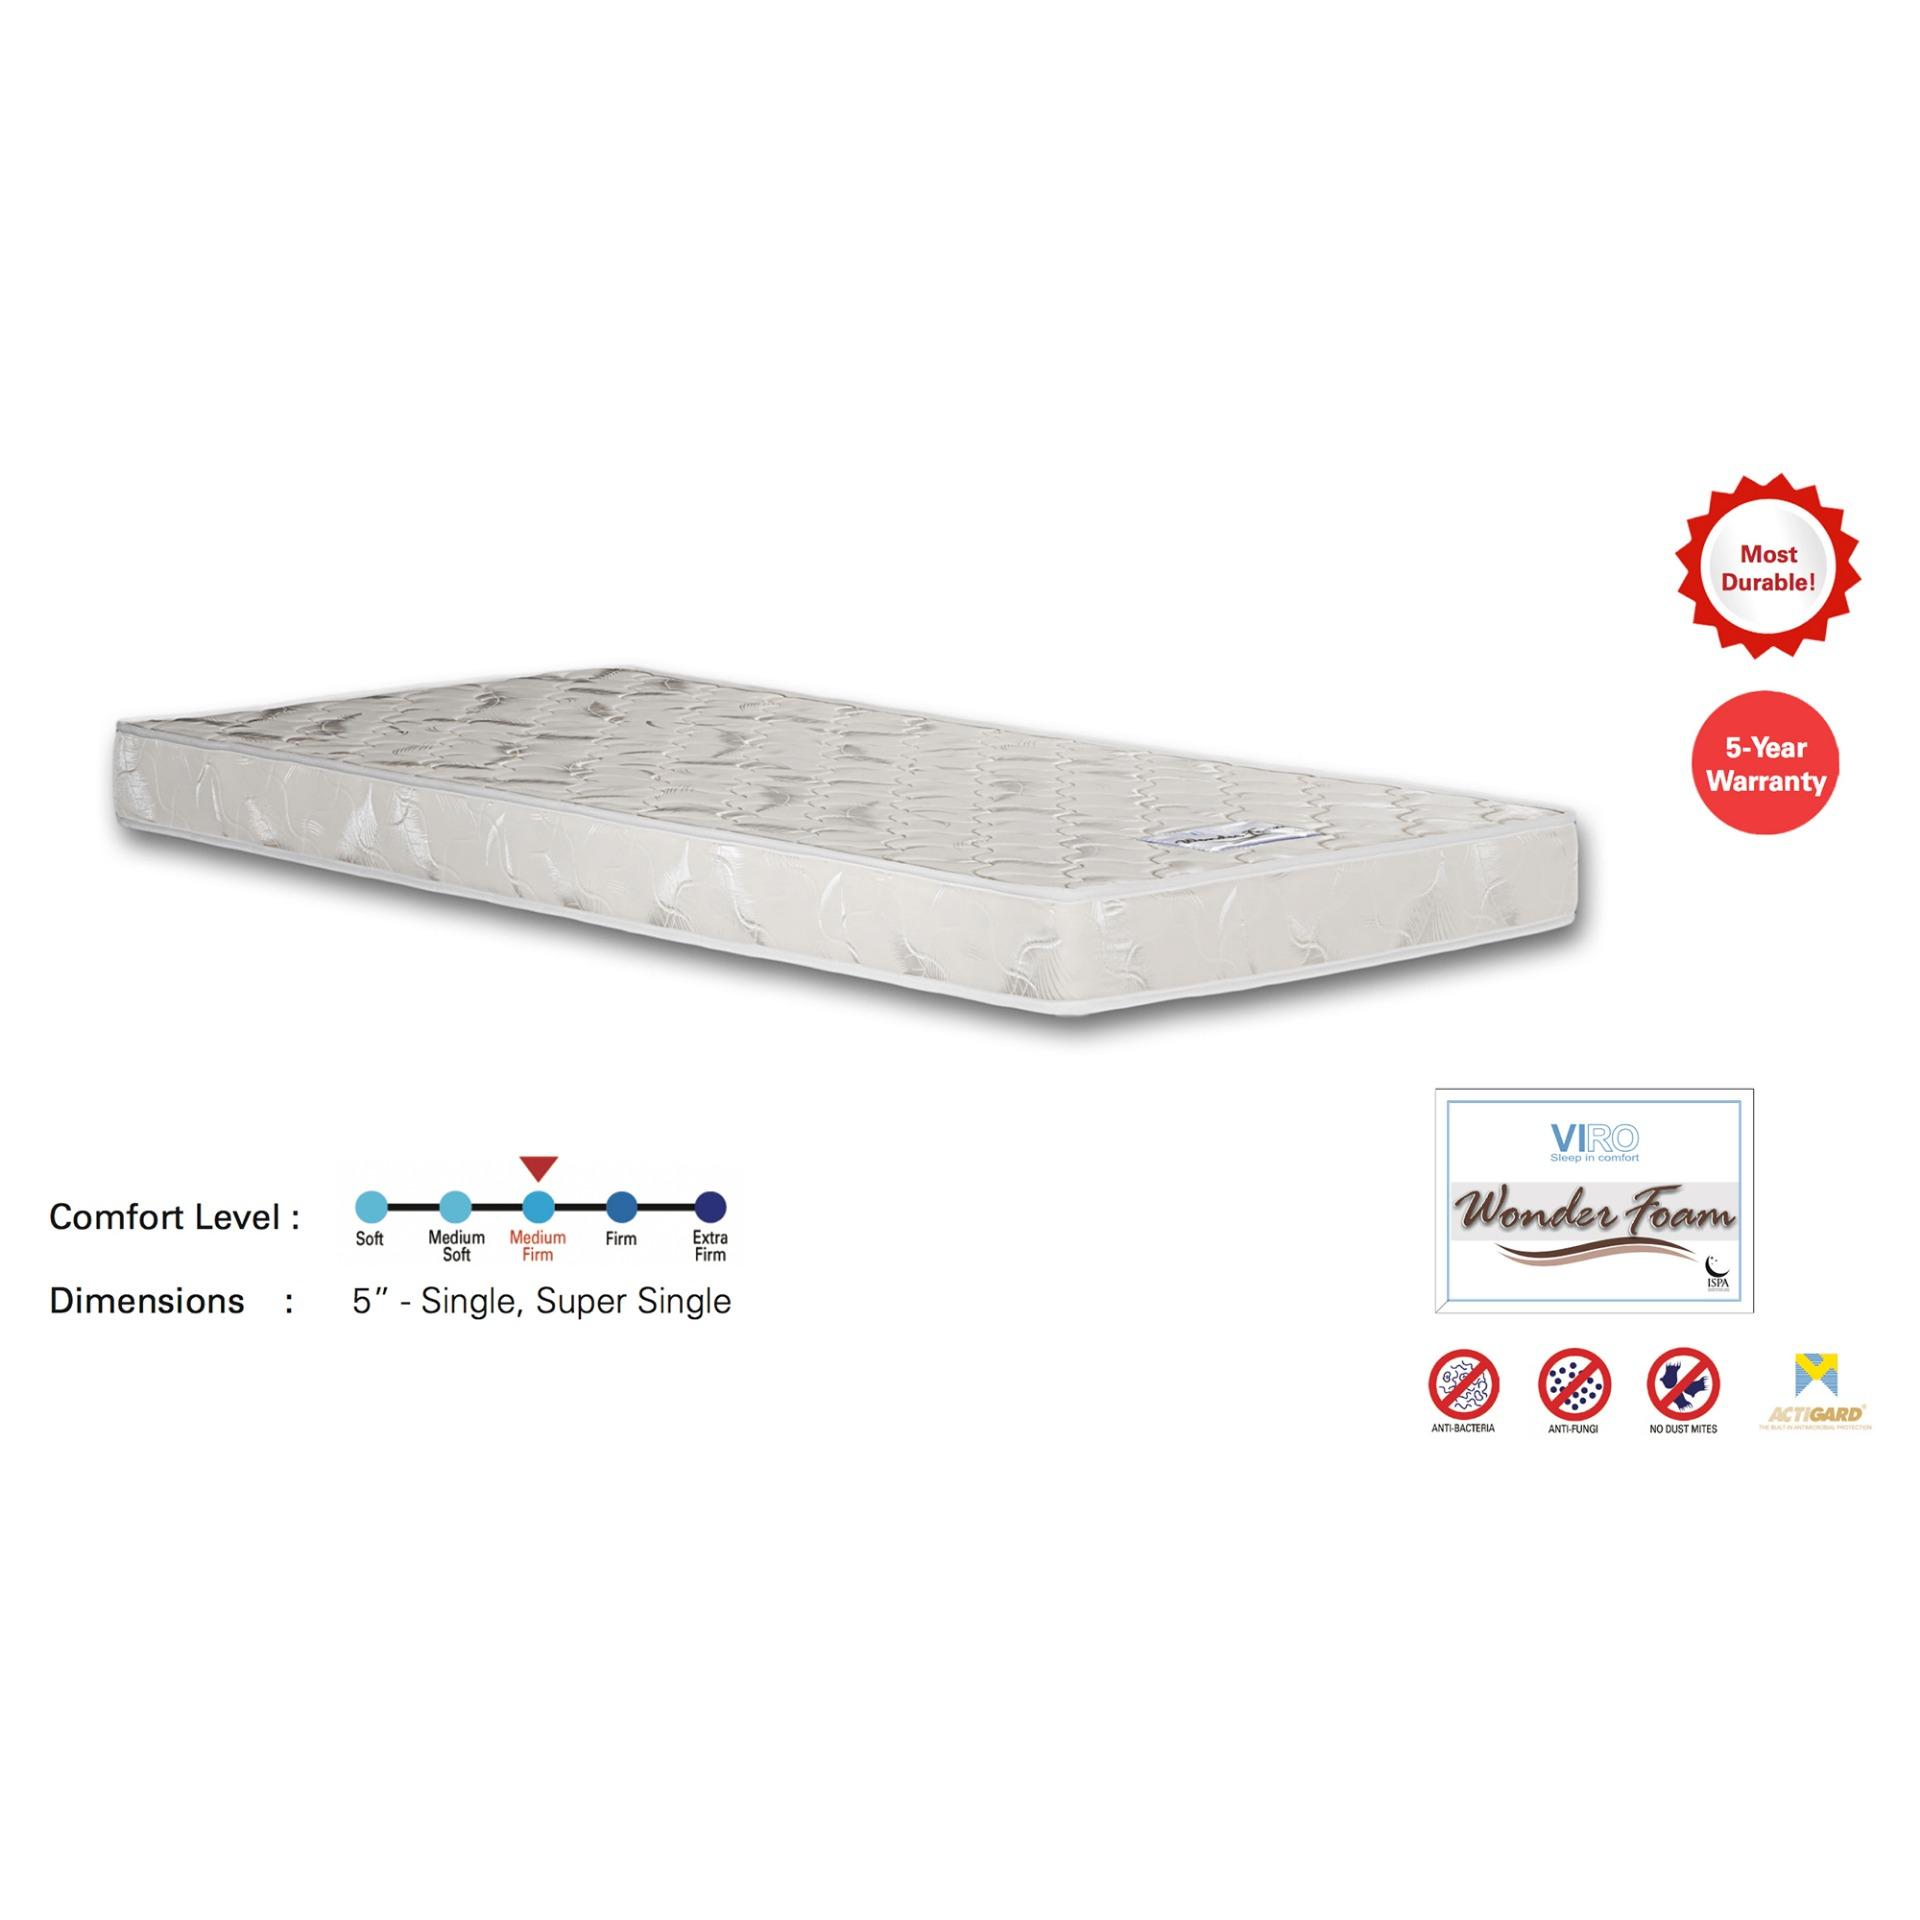 Viro Wonder Foam Mattress 5 Thickness (FREE DELIVERY)